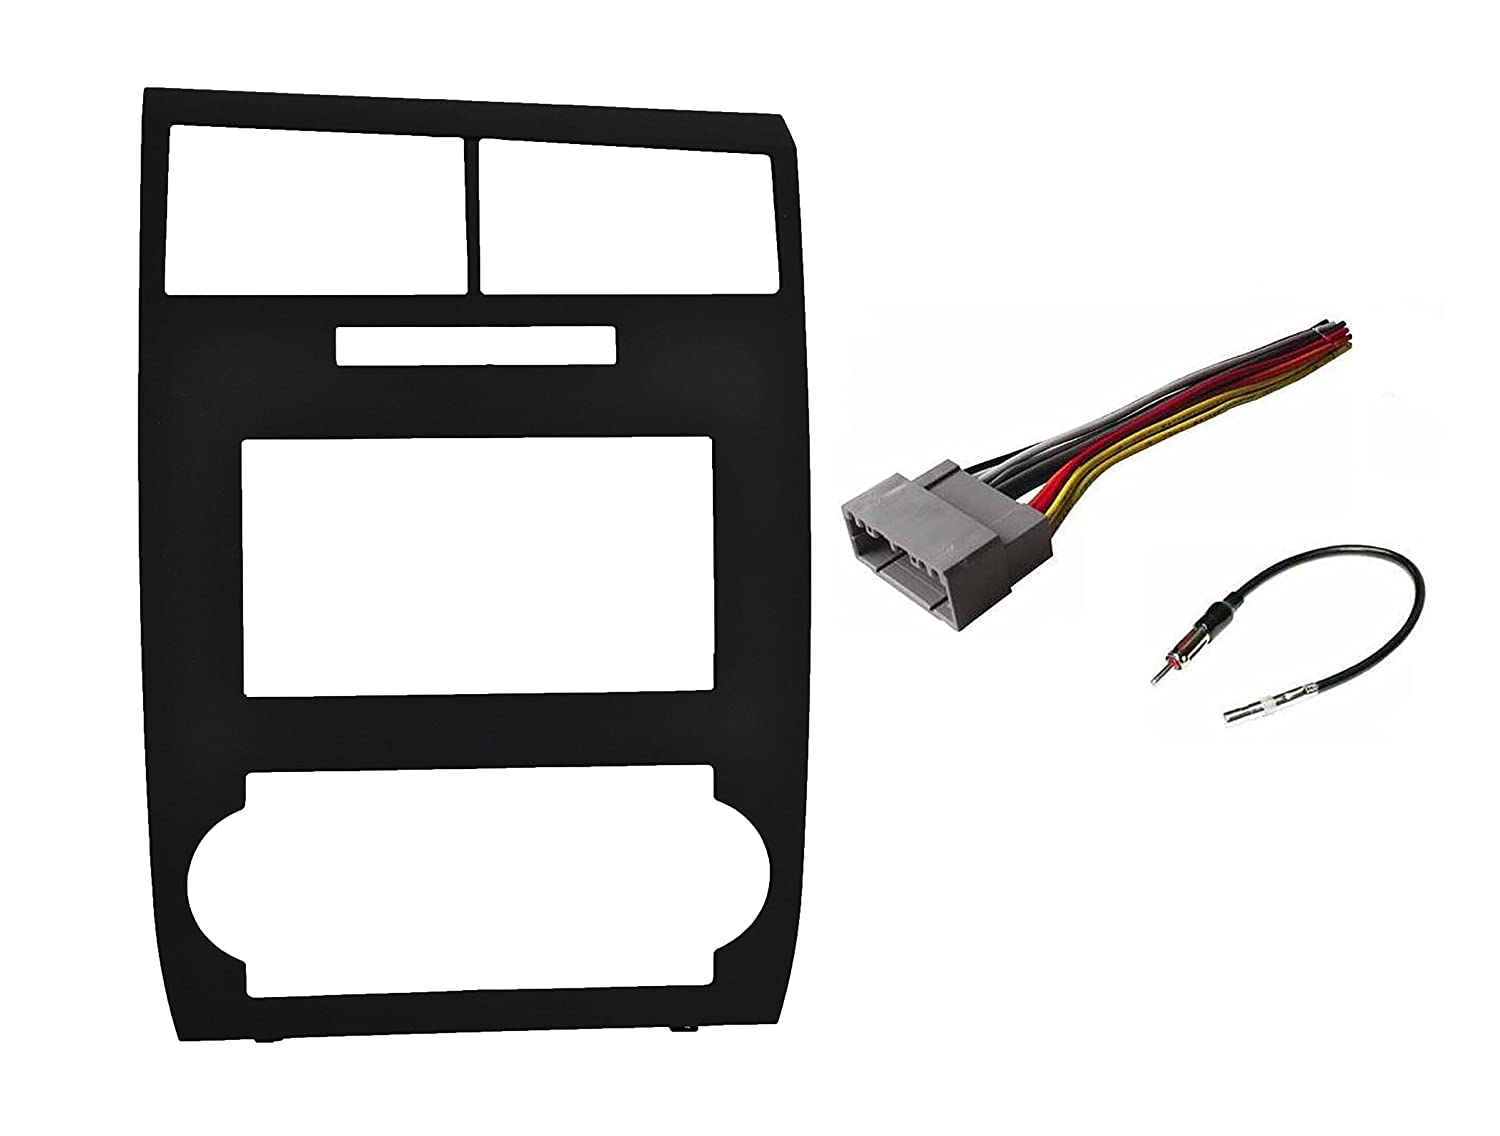 Double Din Installation Kit Fits Dodge Magnum 2005 2007 Stereo Wire Harness International Charger 2006 Black Factory Matched Color With And Antenna Adapter